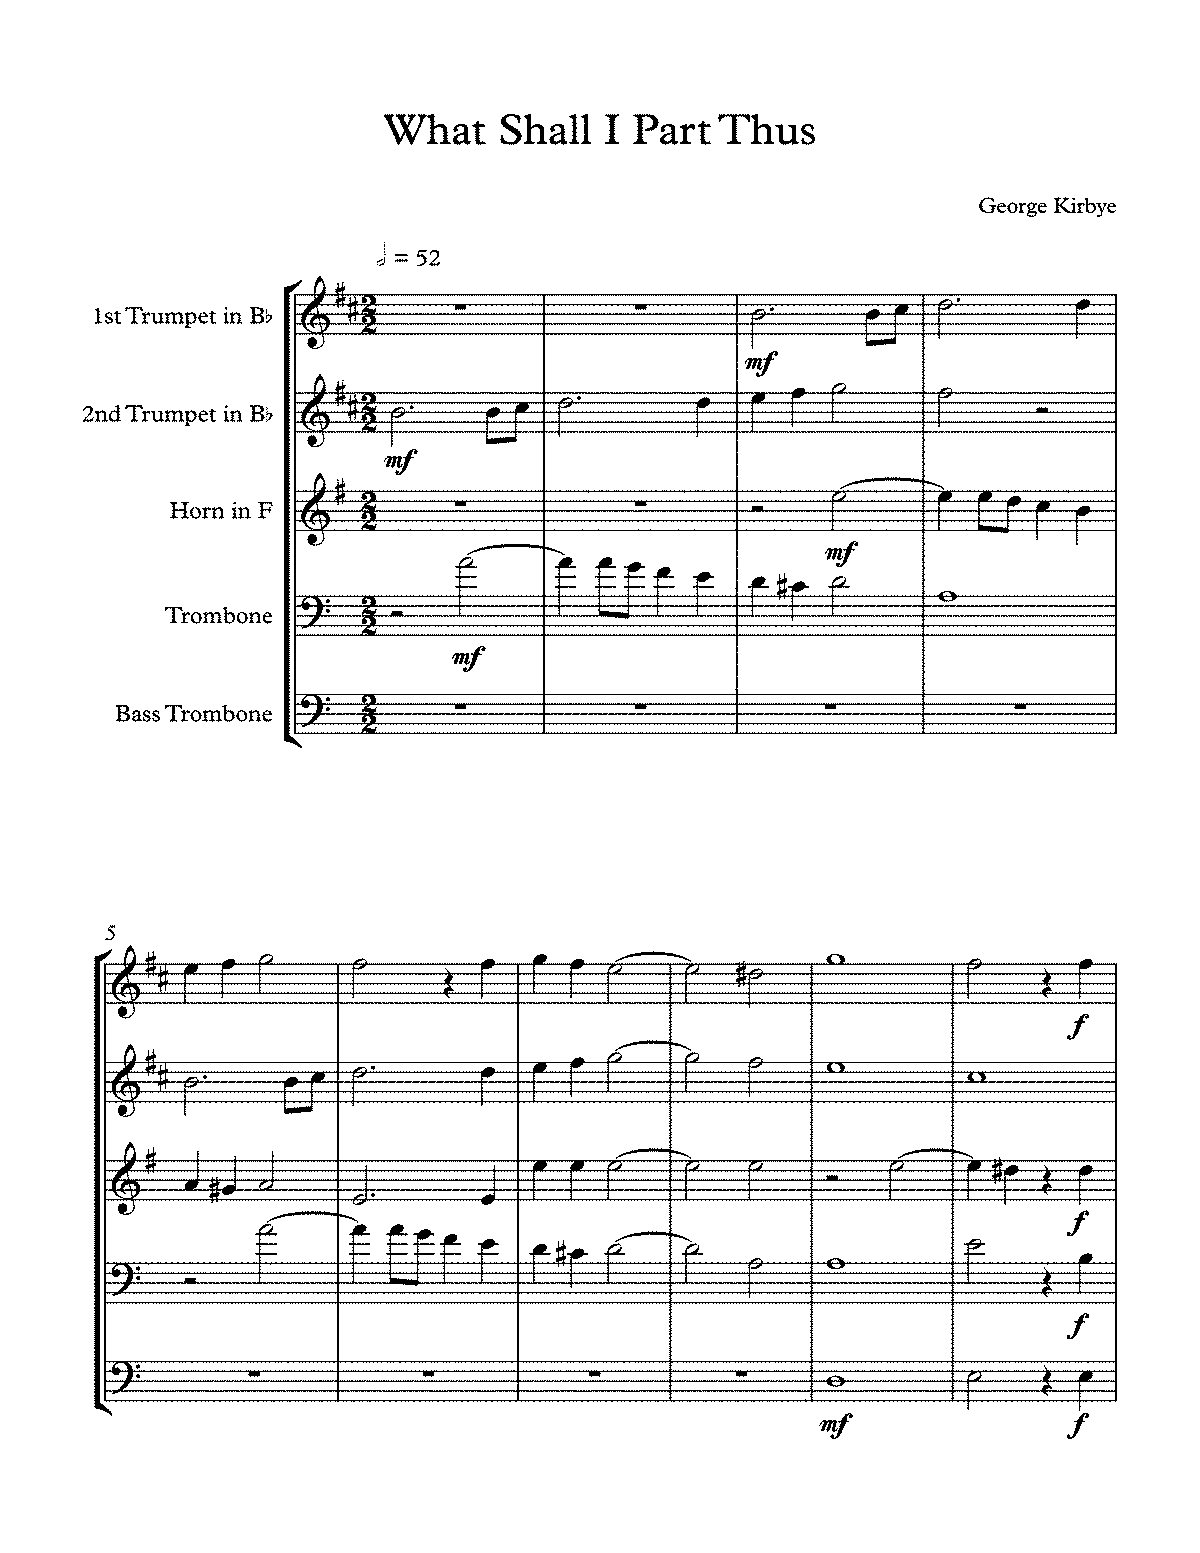 PMLP236858-What Shall I Part Thus - Full Score.pdf